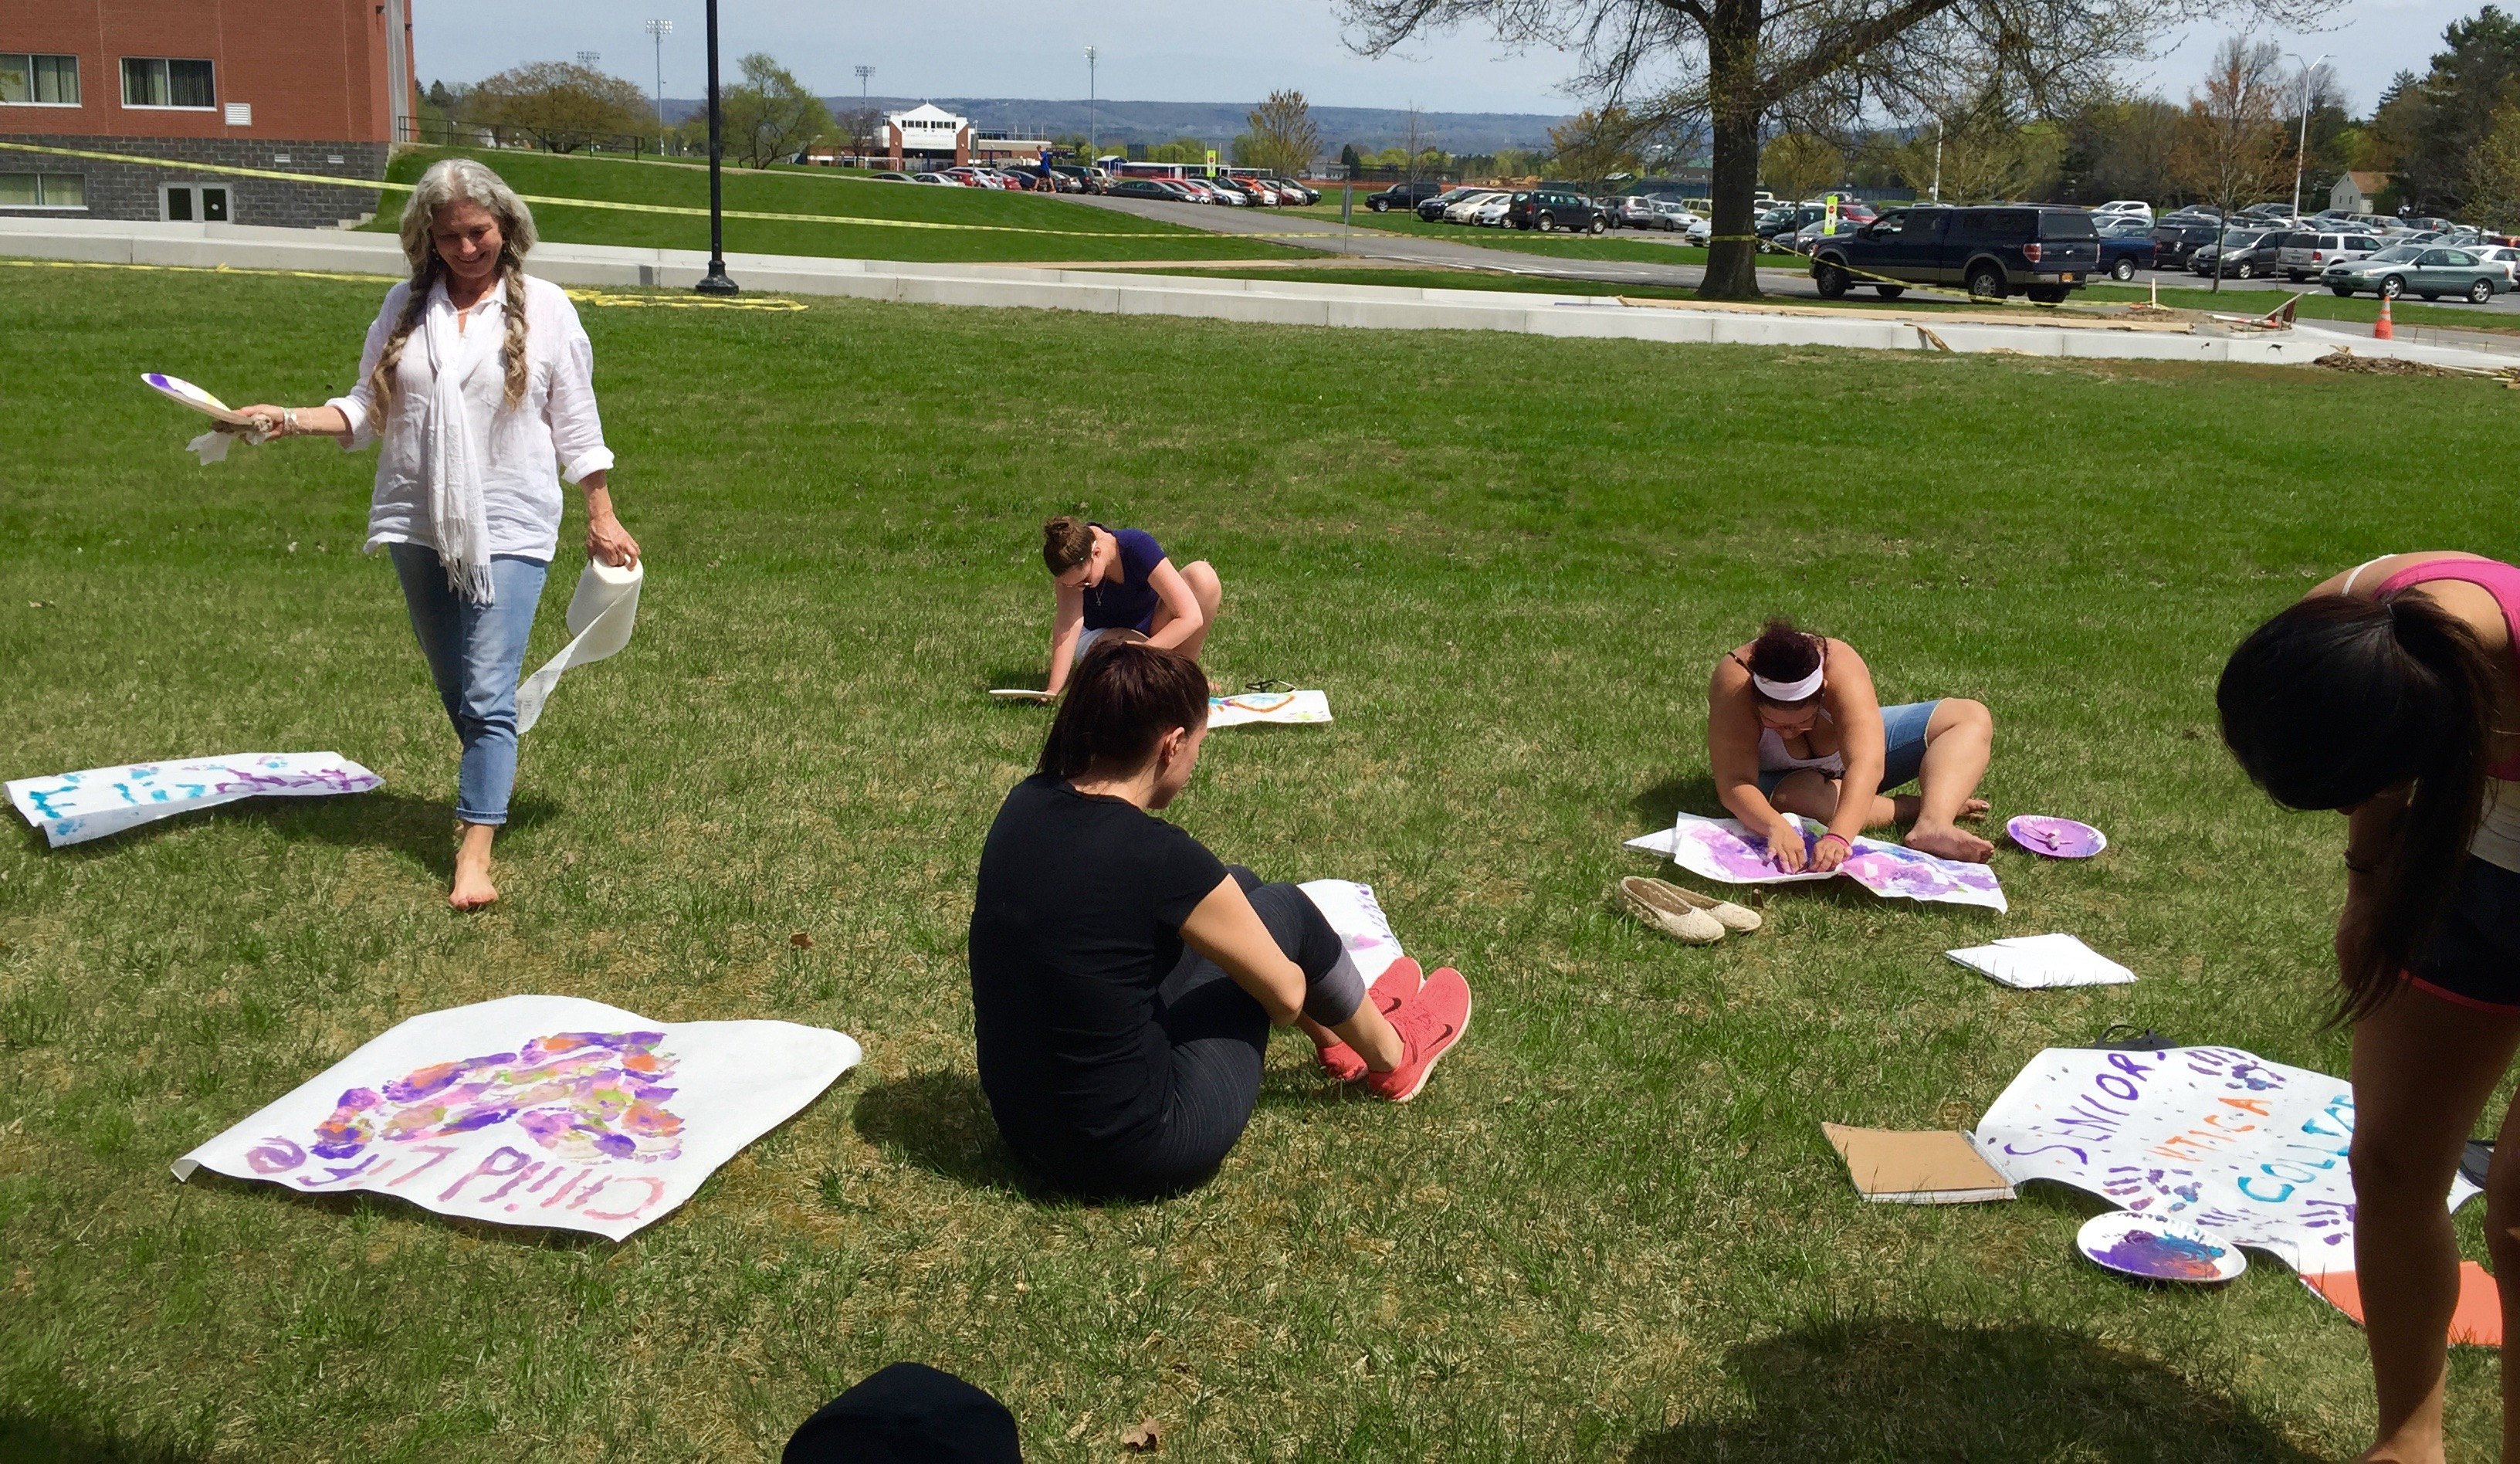 Professor Marris and some of my classmates enjoying play therapy in the sun!